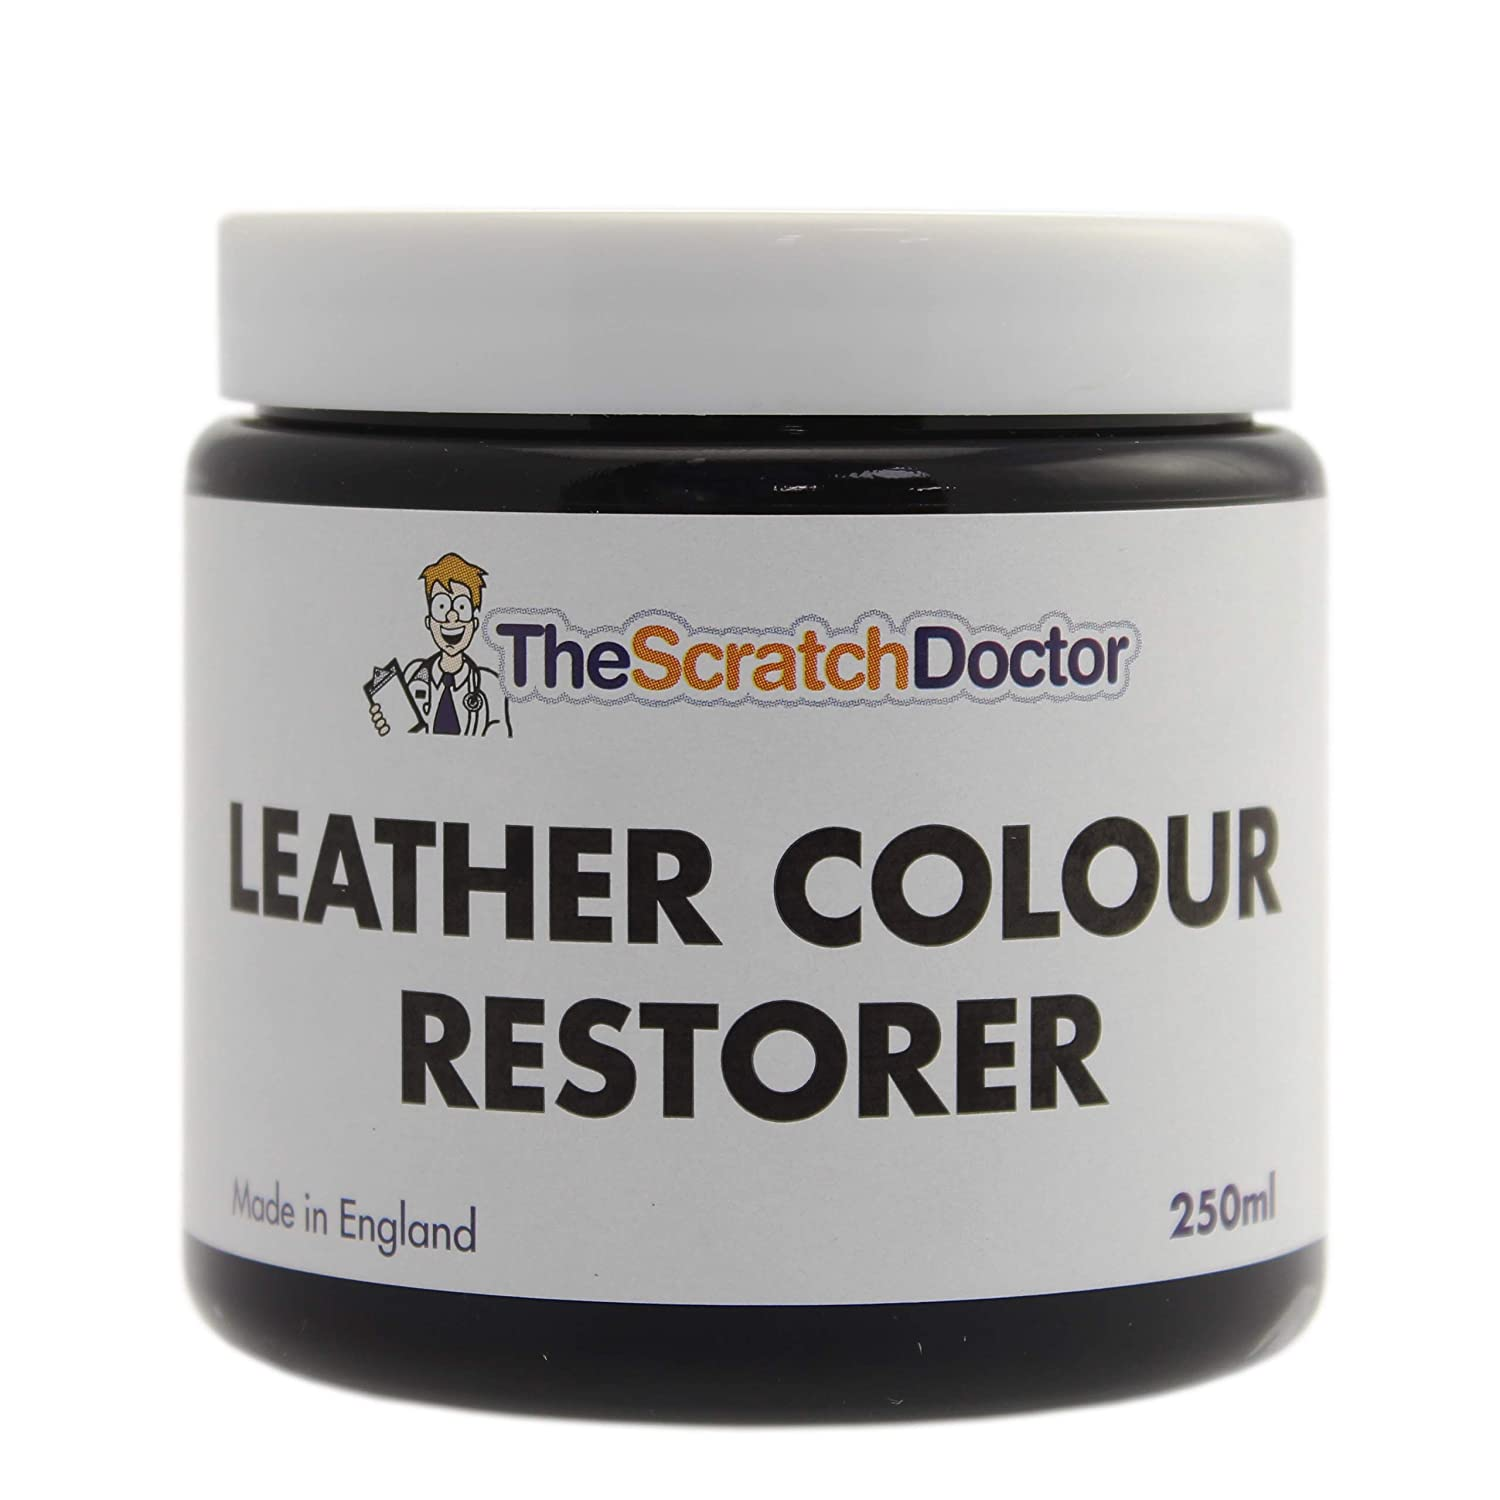 BLACK Leather Colour Restorer for Faded and Worn Car Interiors The Scratch Doctor